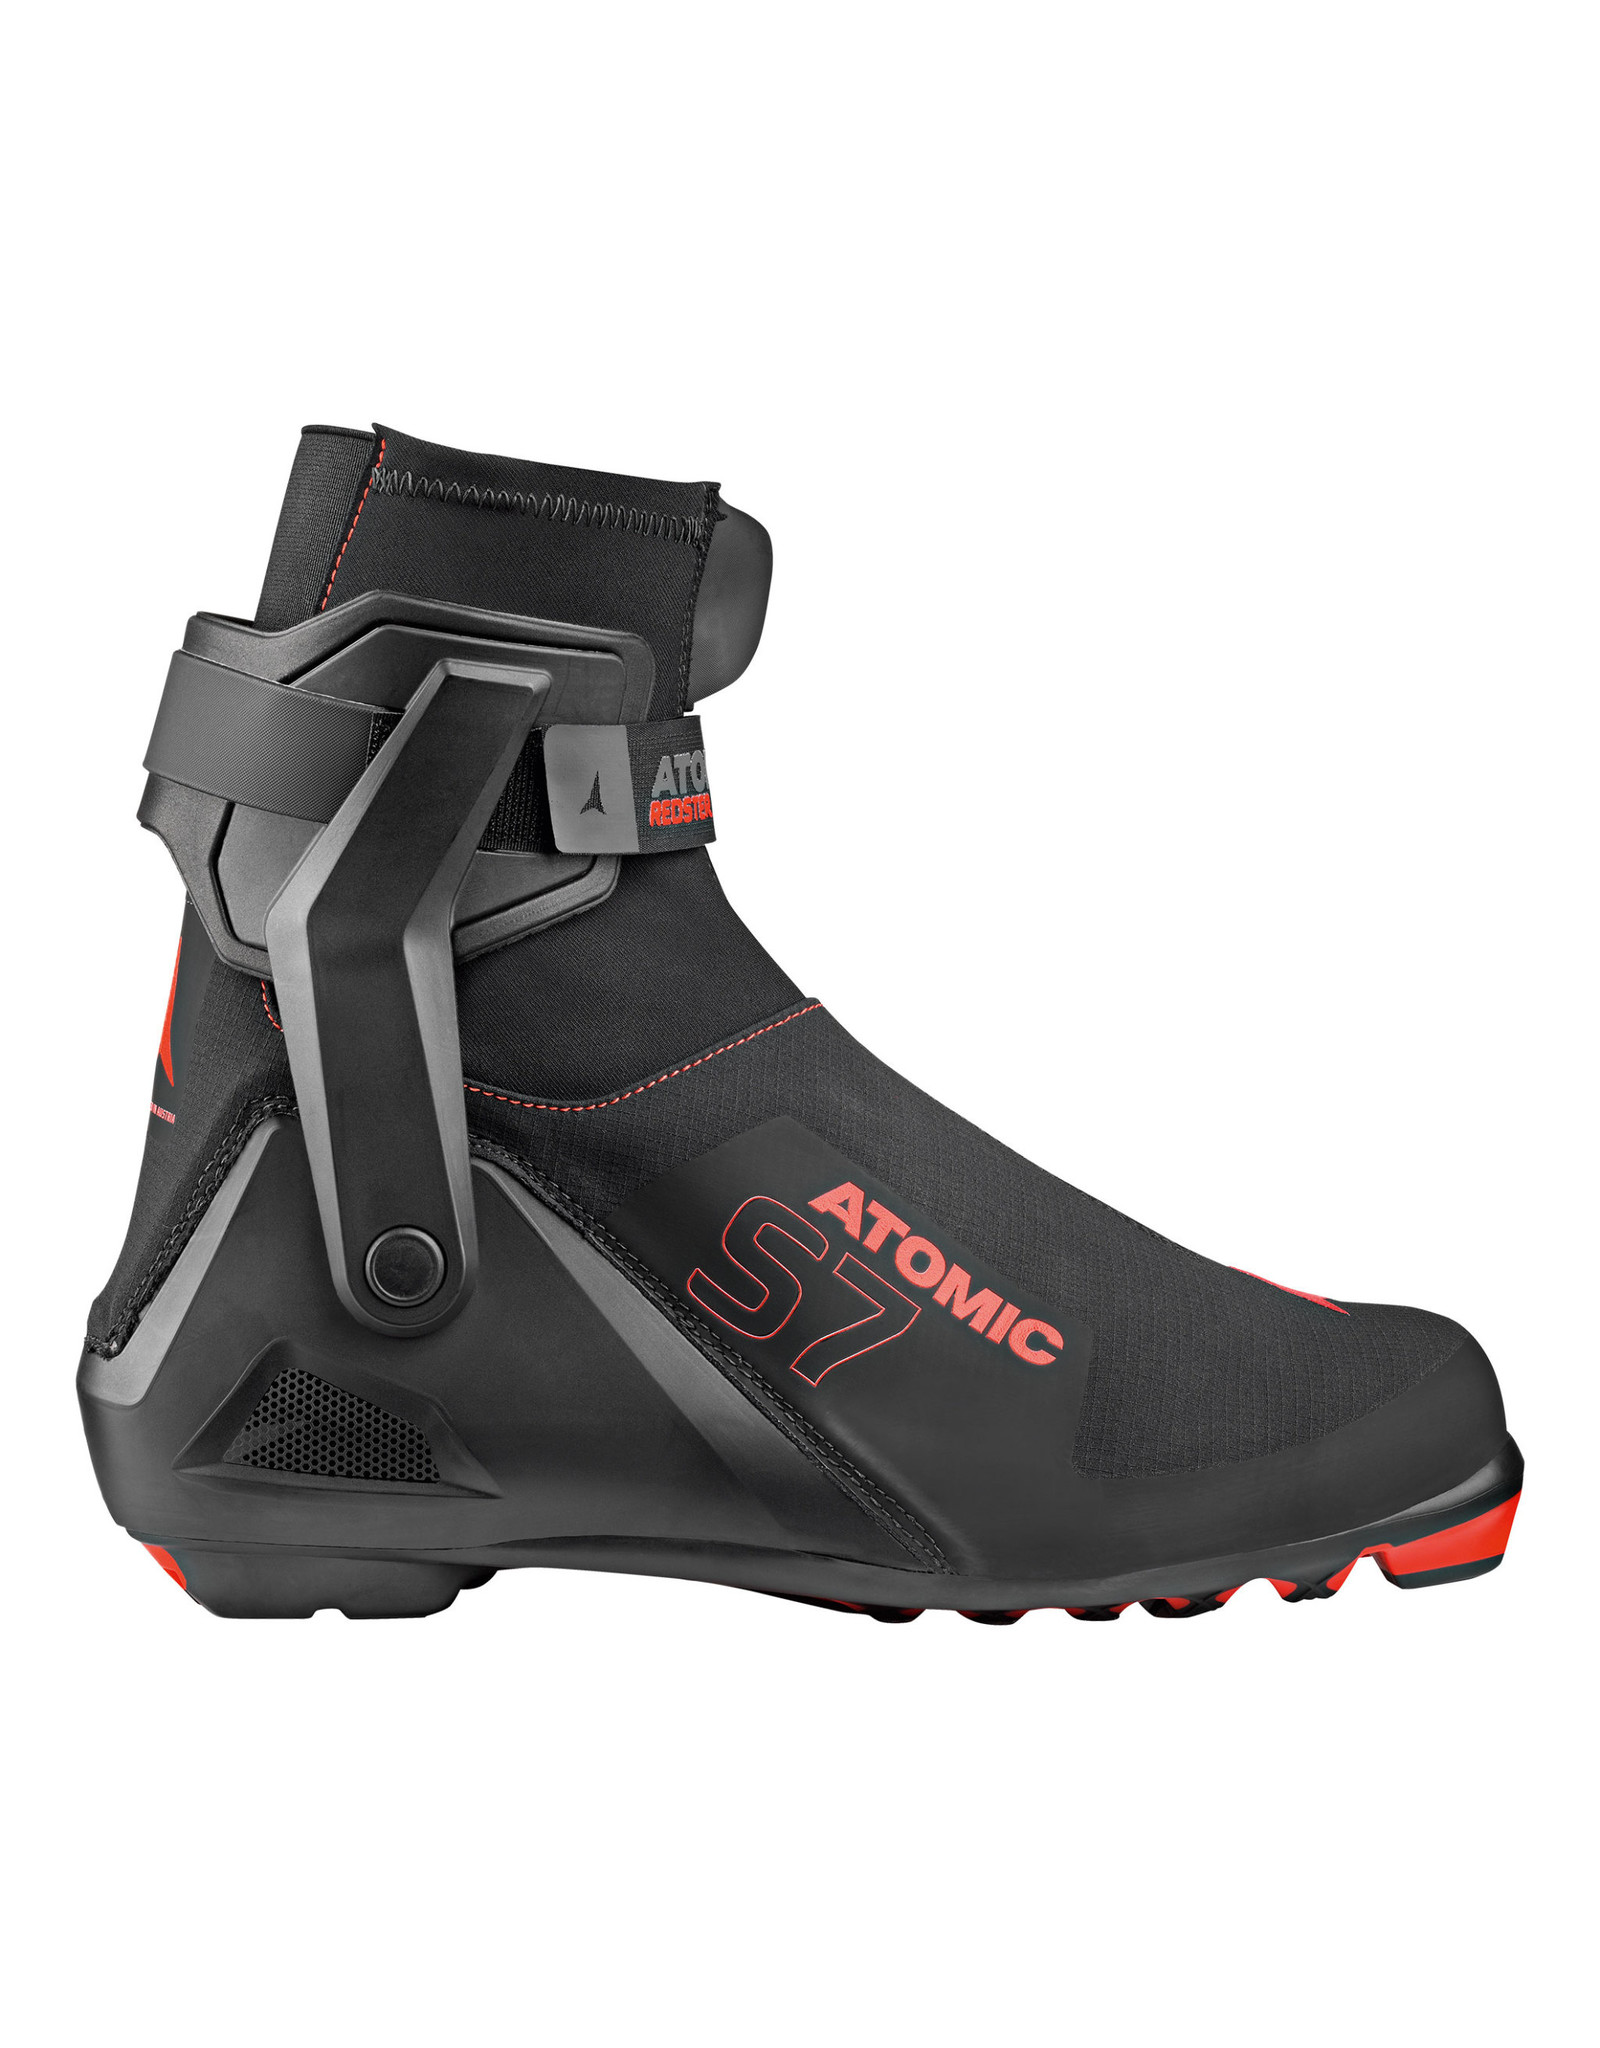 Atomic Atomic Redster S7 Skate Boot